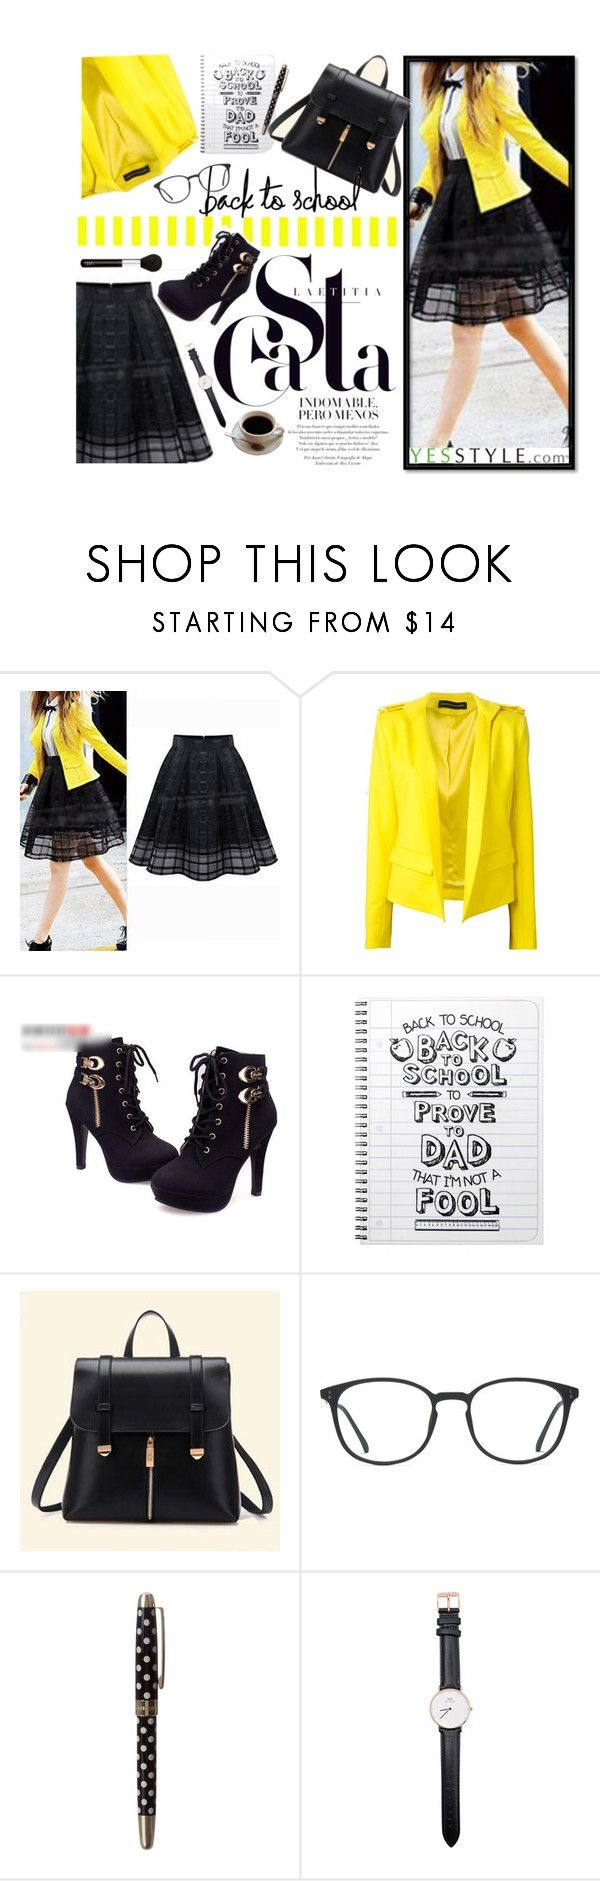 """""""Back to school No. 2"""" by m-zineta ❤ liked on Polyvore featuring Eloqueen, Alexandre Vauthier, IYATO, BeiBaoBao, GlassesUSA, Kate Spade, Daniel Wellington and NARS Cosmetics"""